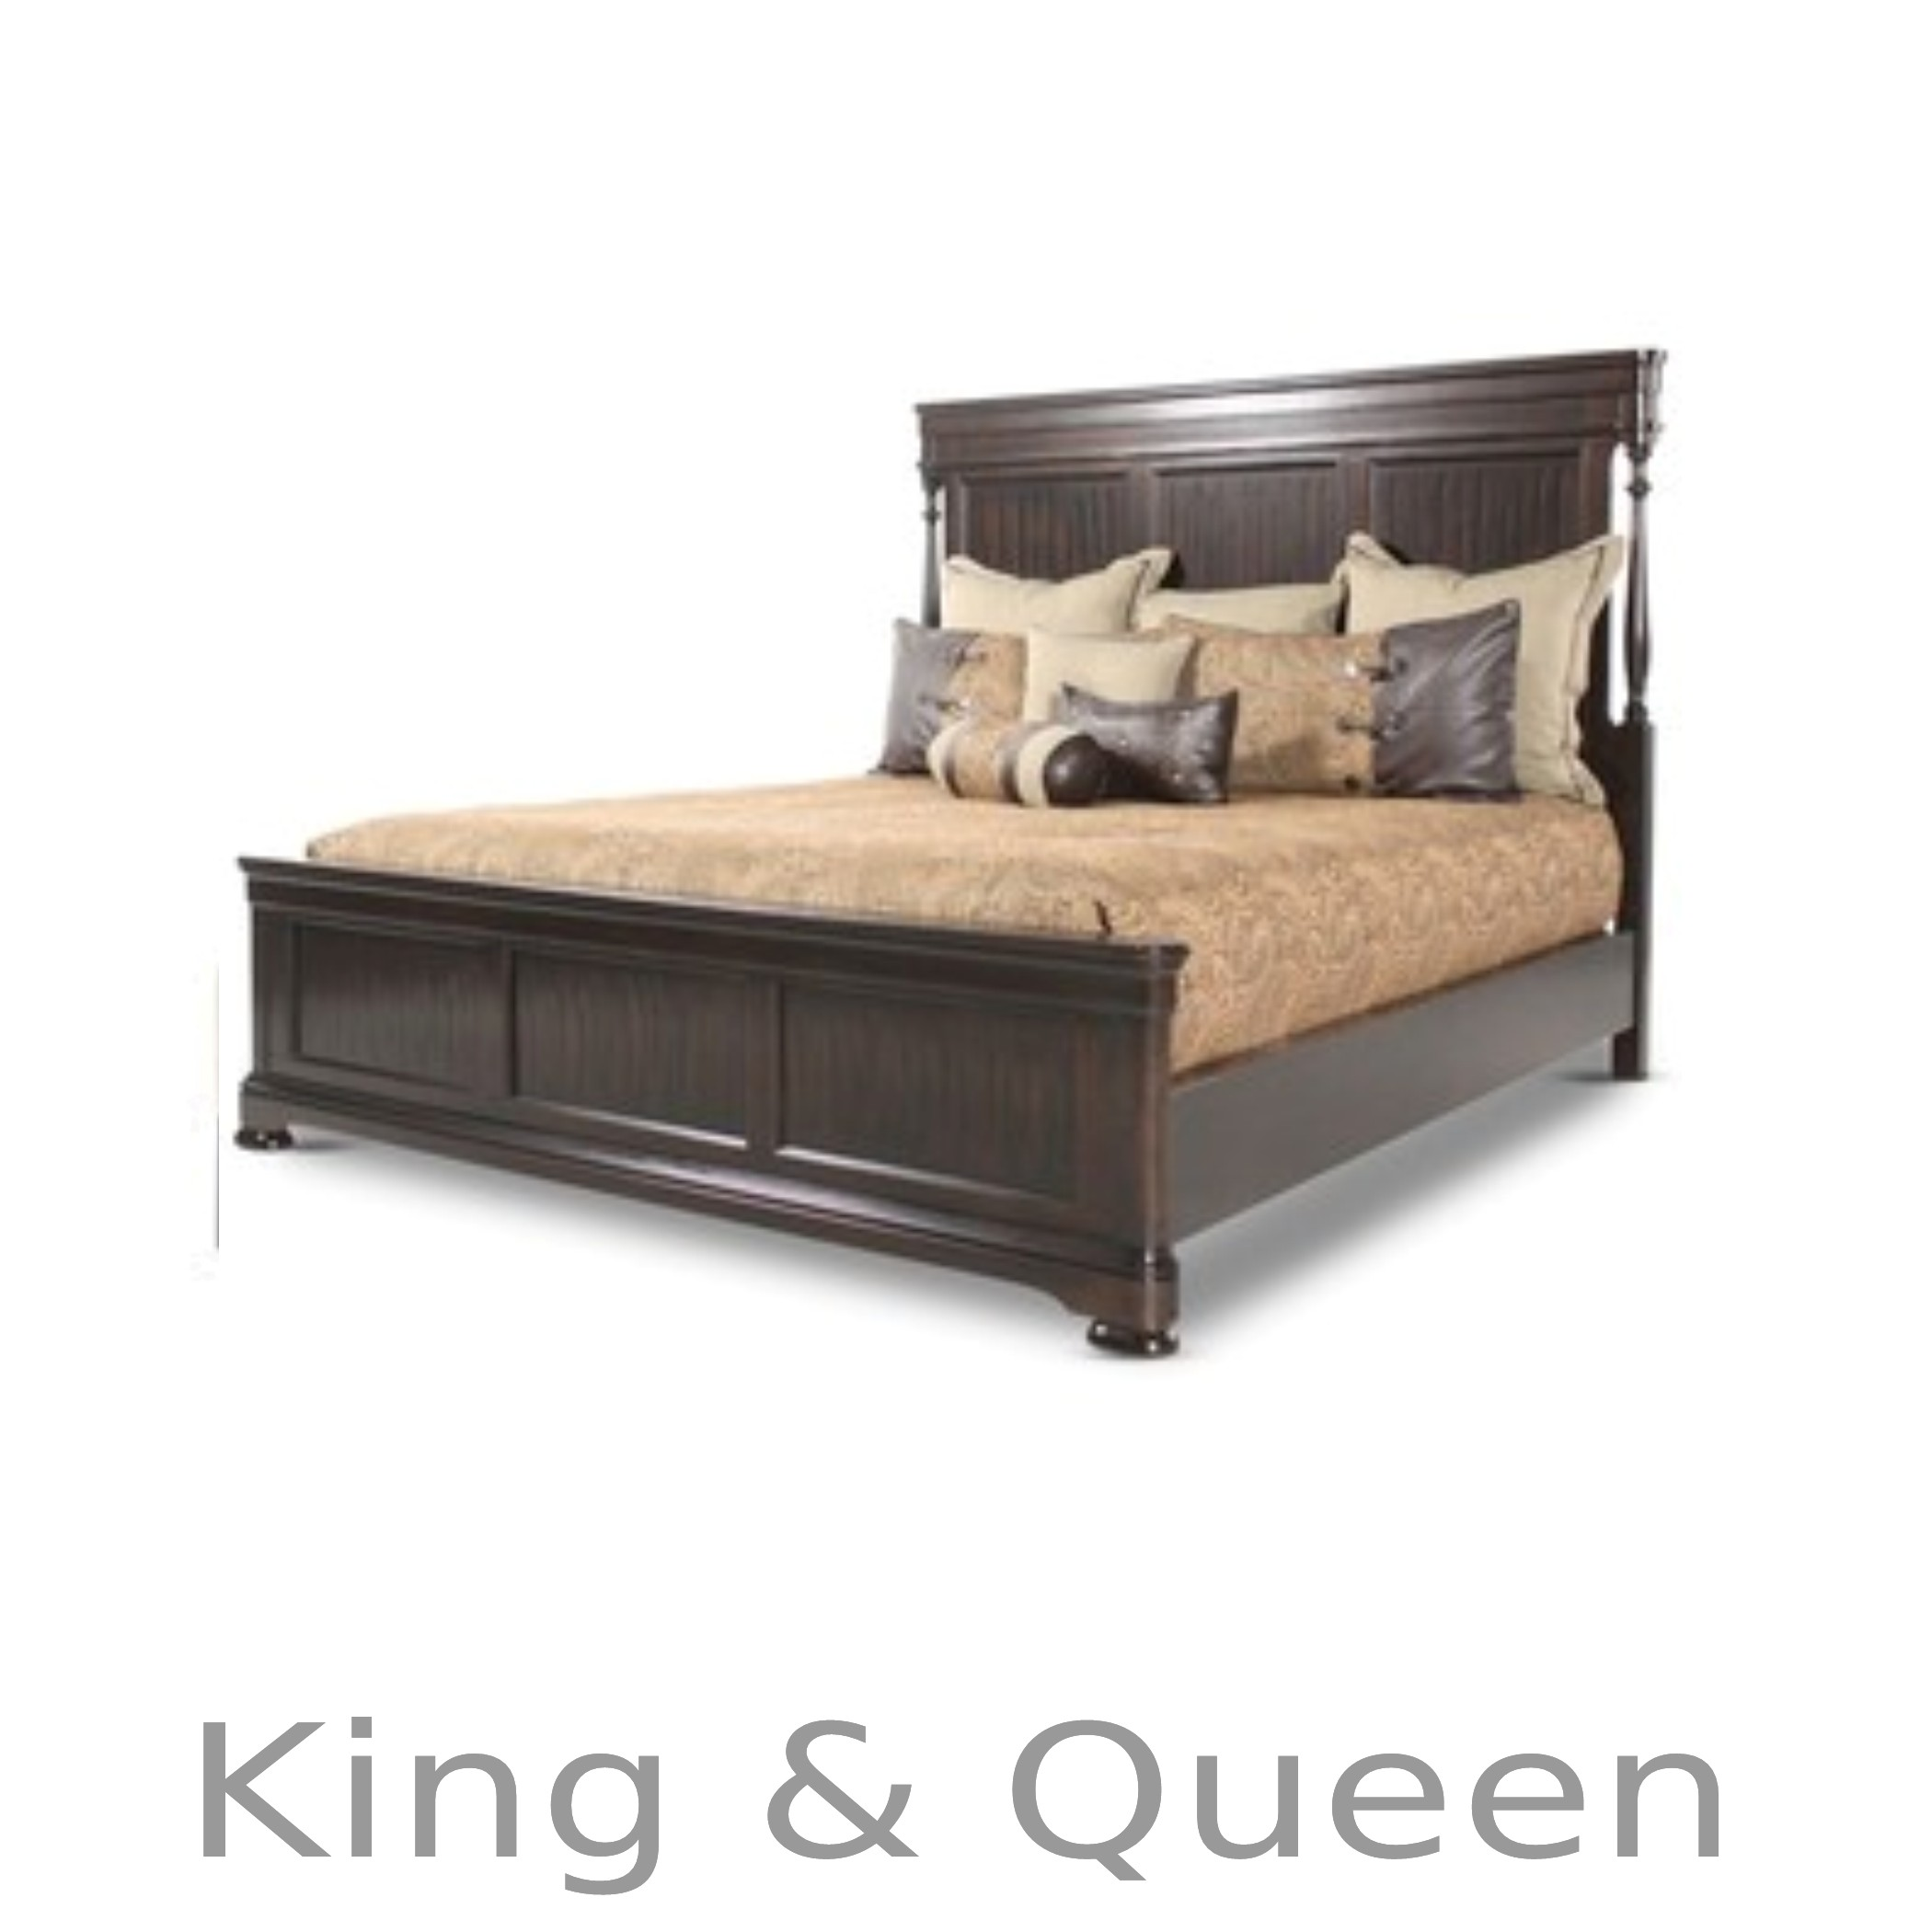 King and Queen.font.jpg